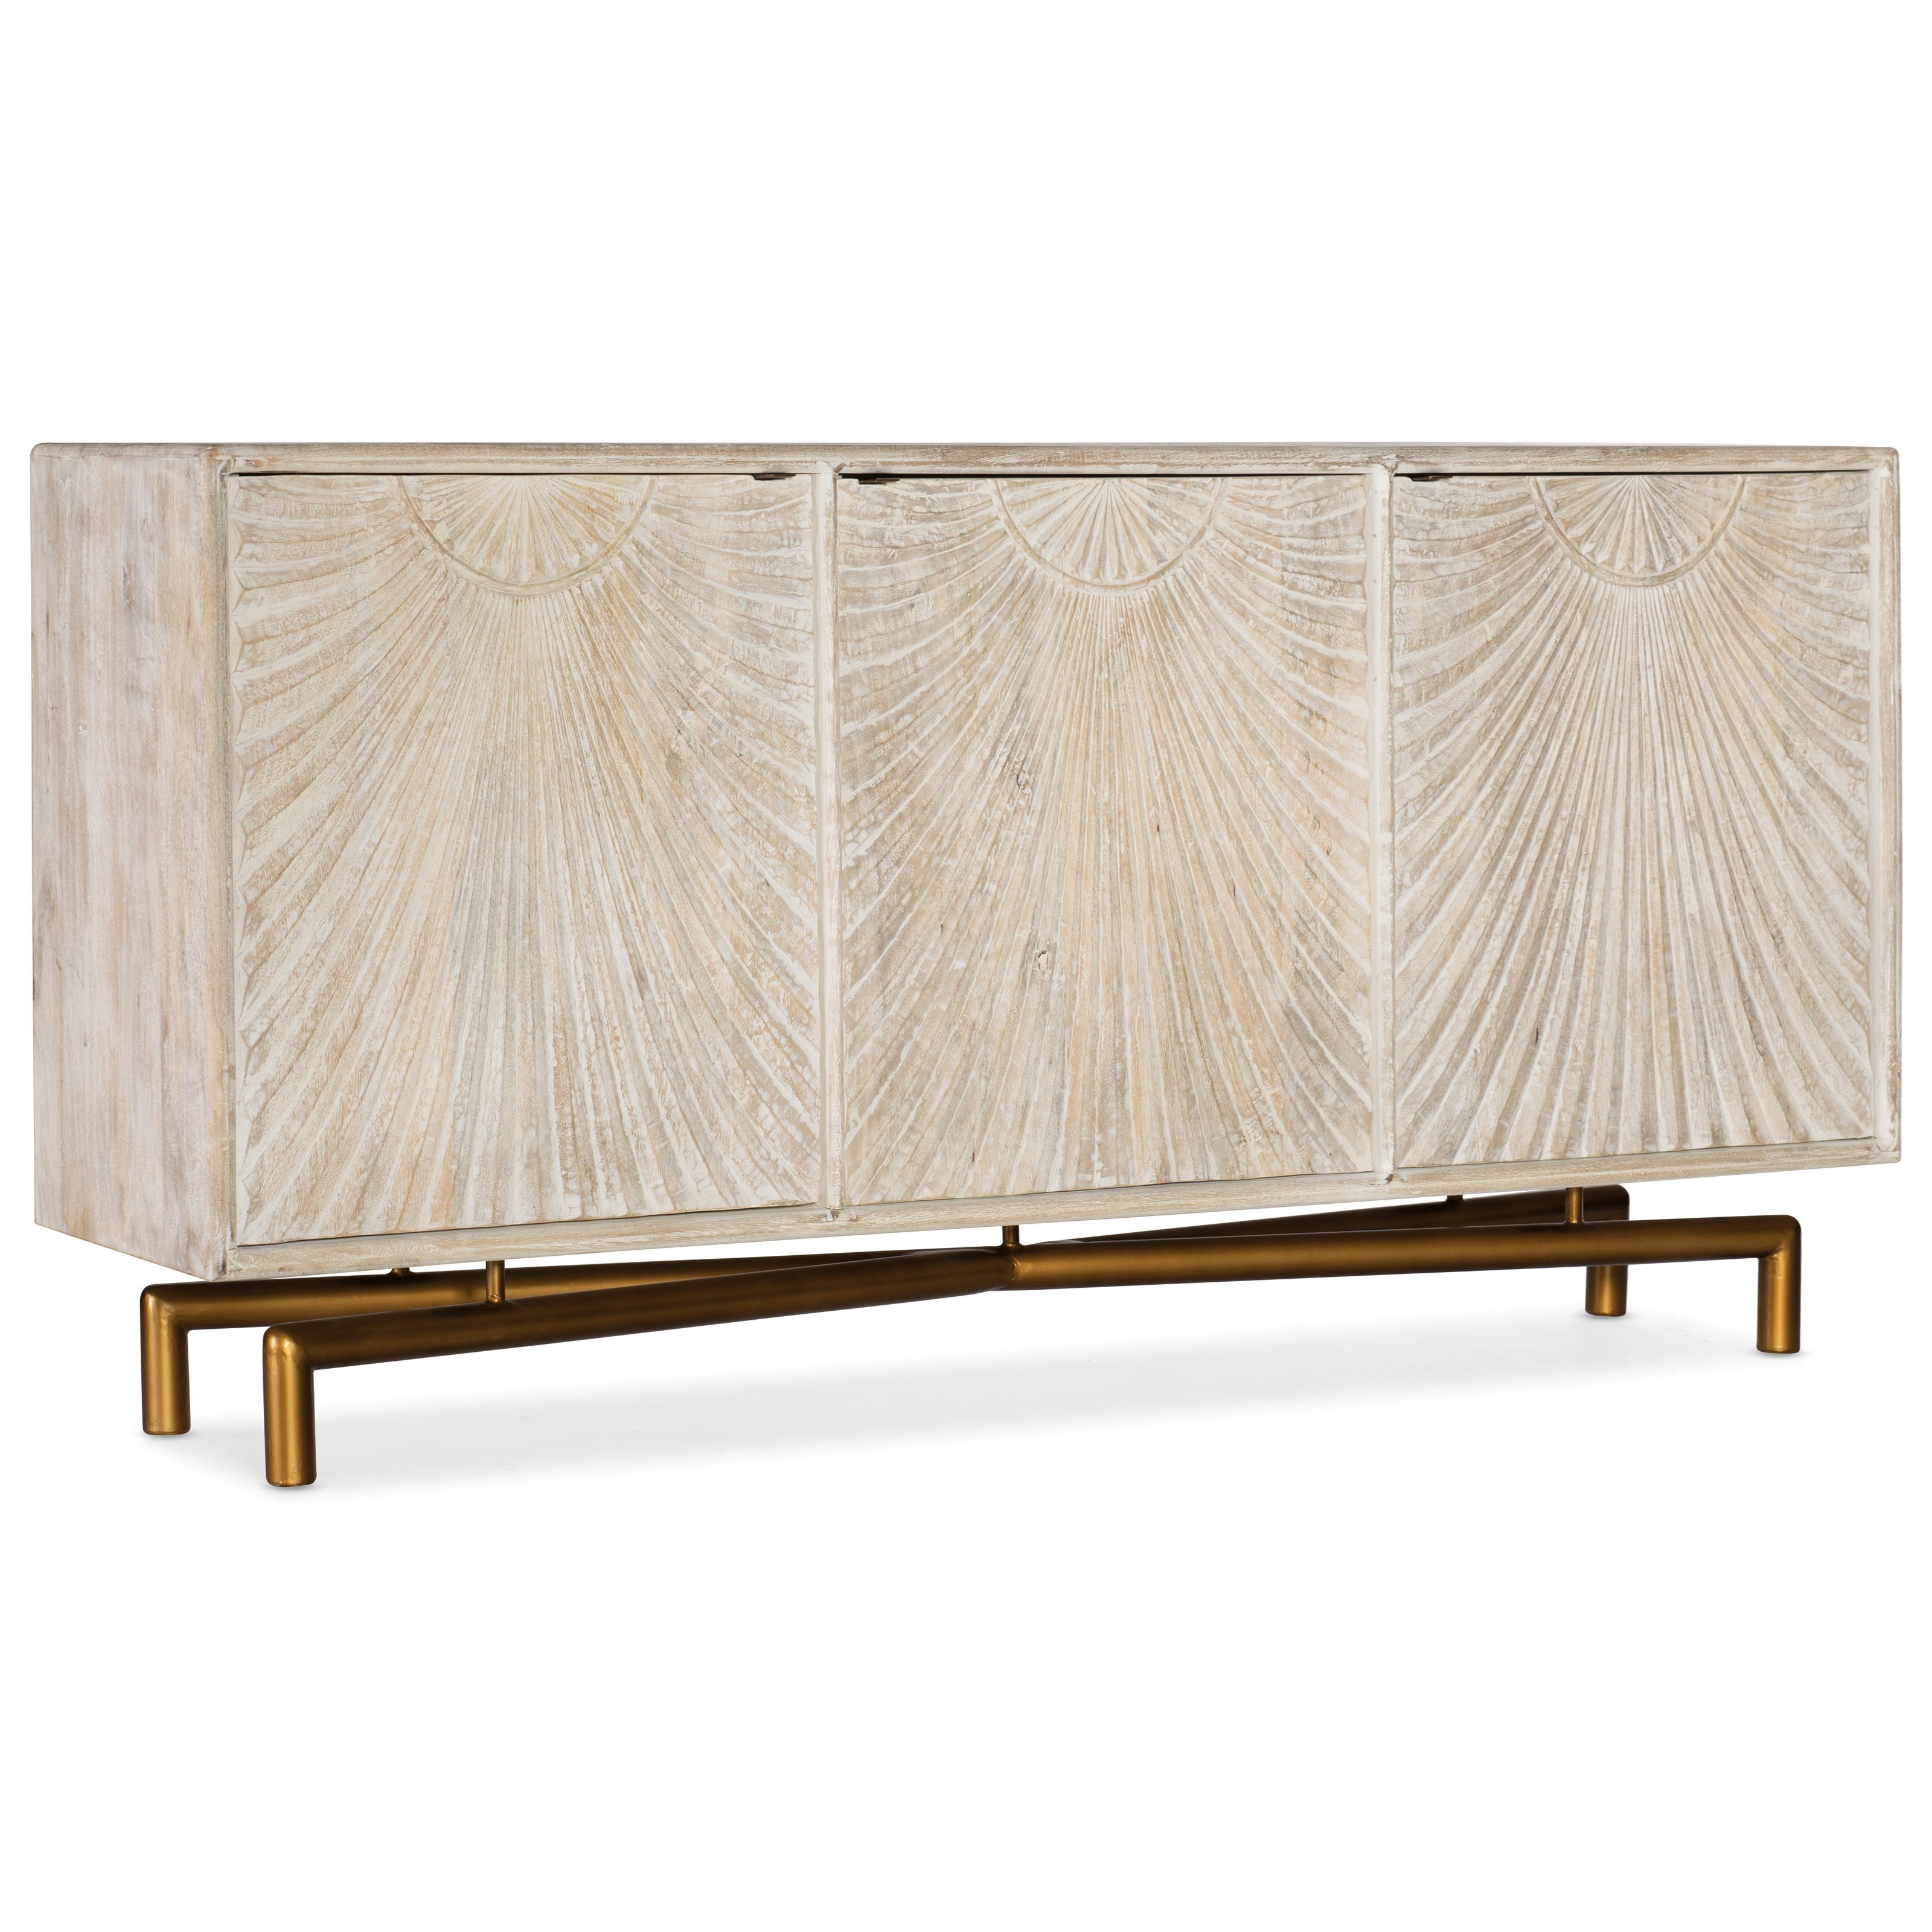 Living Room Accents Entertainment Console by Hooker Furniture at Baer's Furniture